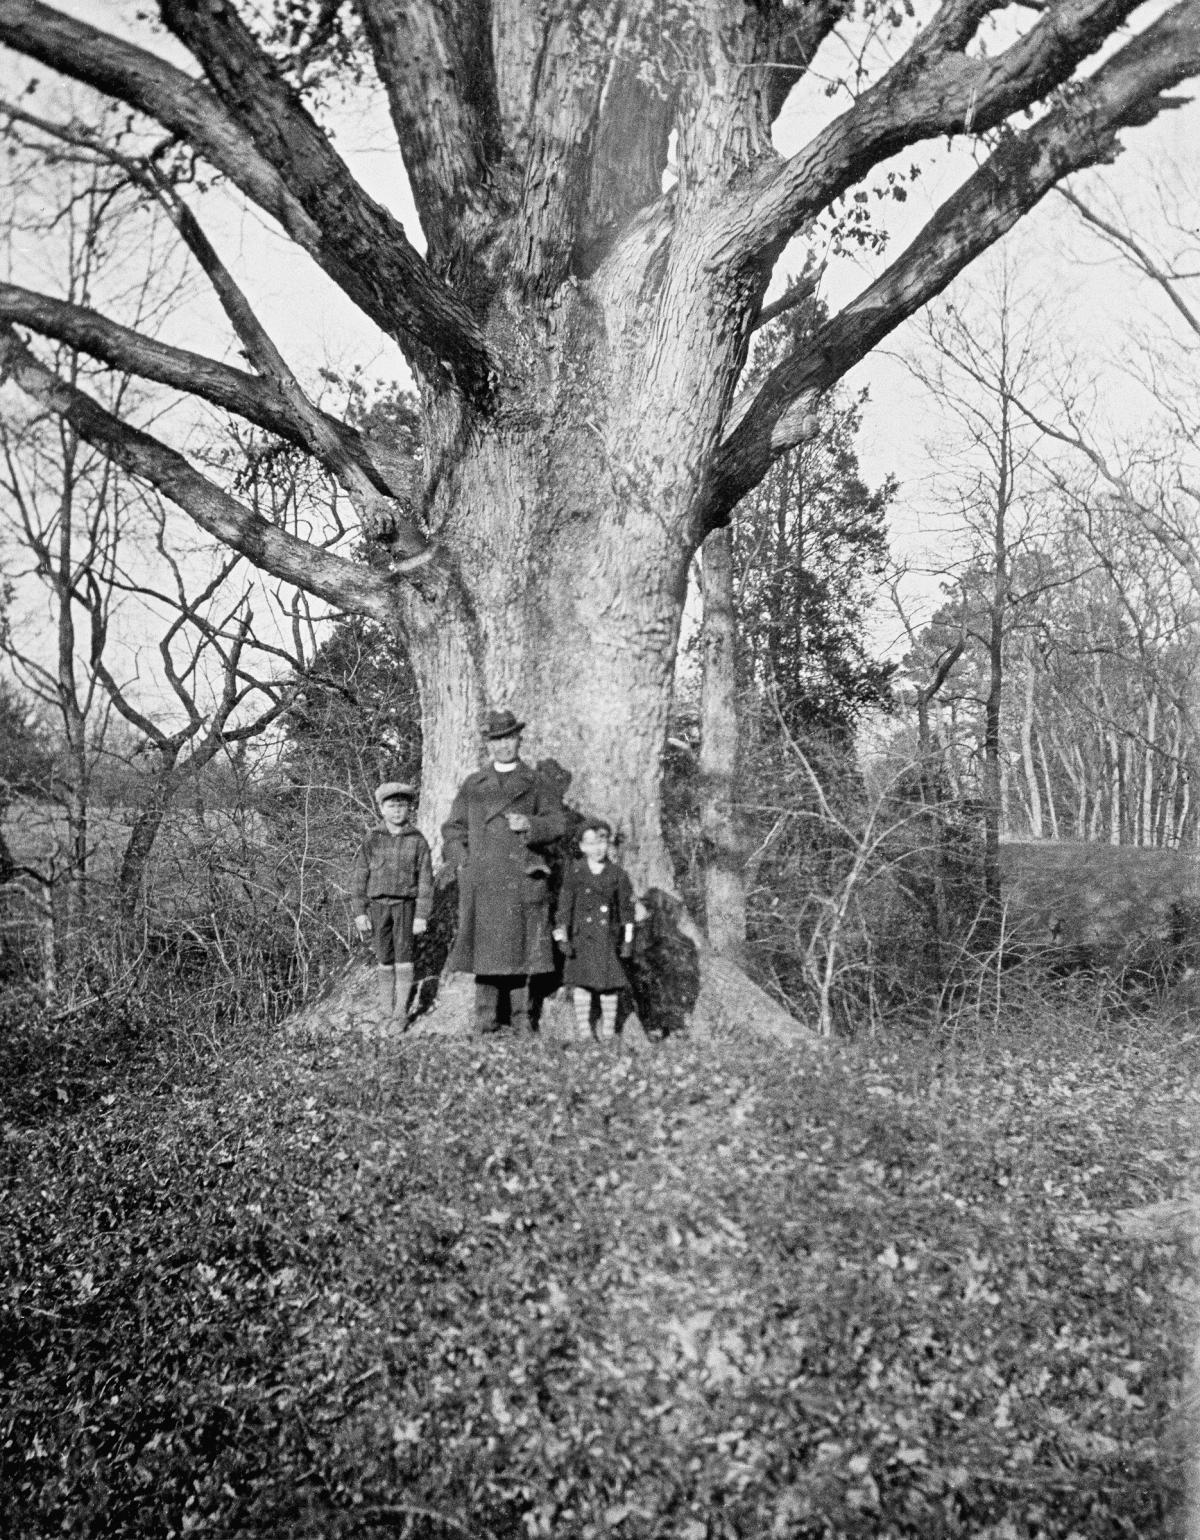 Goodwin with his sons Howard and William beneath the Great Oak at Bassett Hall, circa 1926.